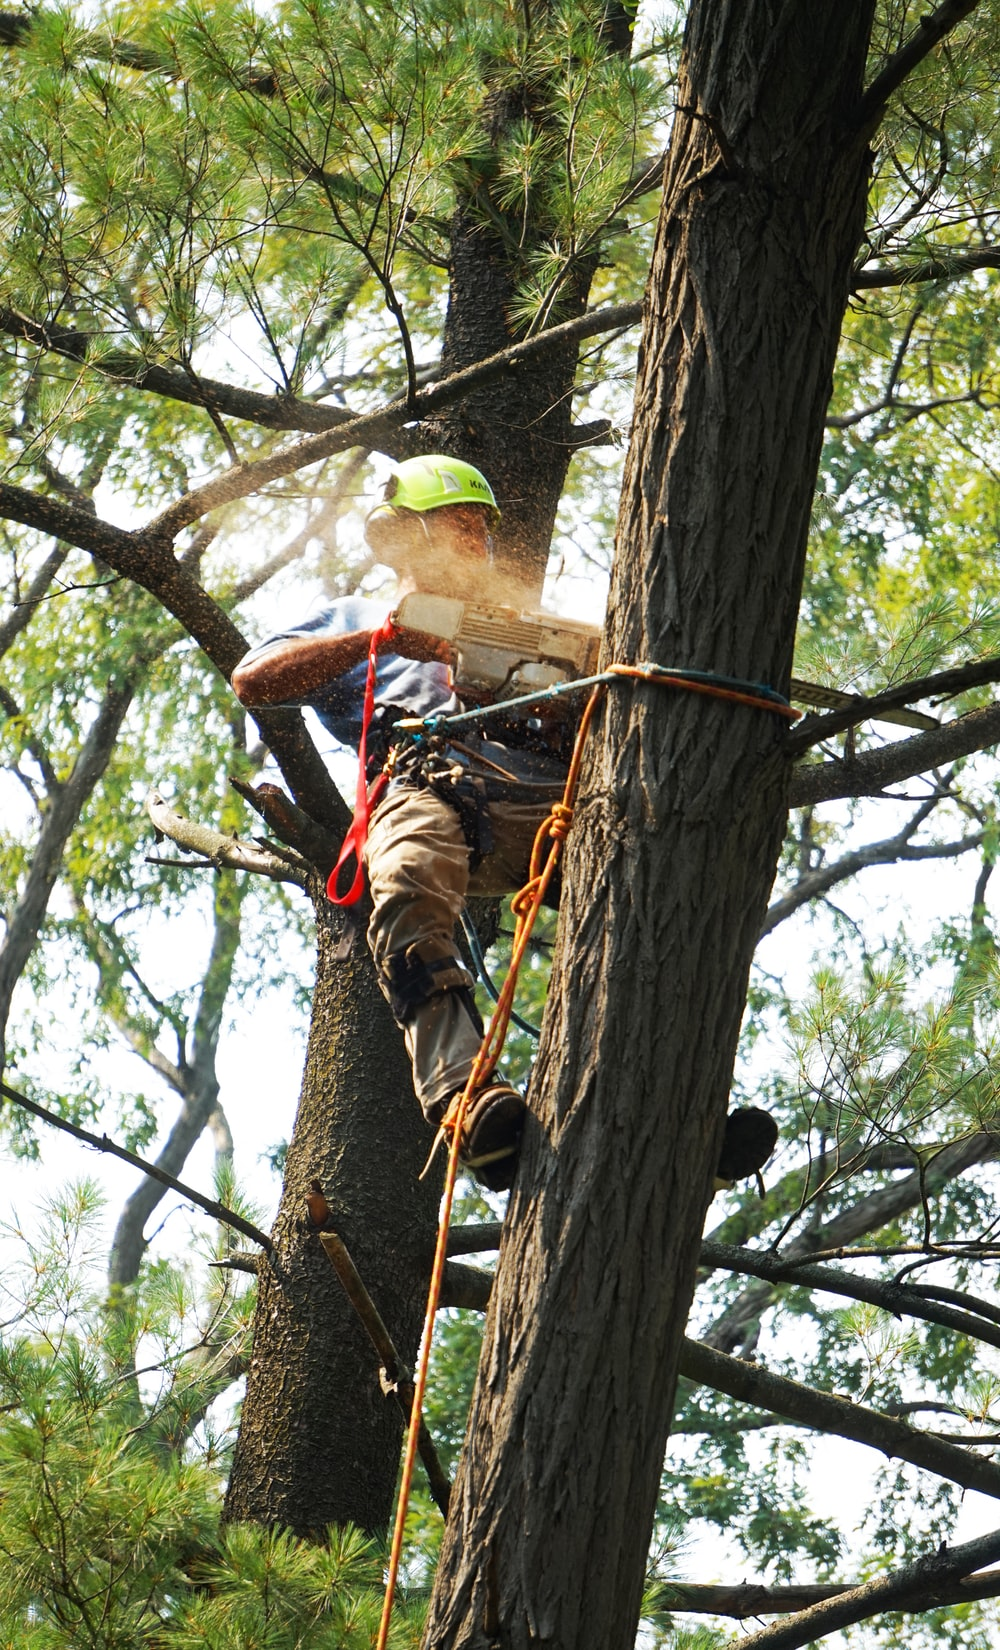 man in red and black shirt climbing on brown tree during daytime